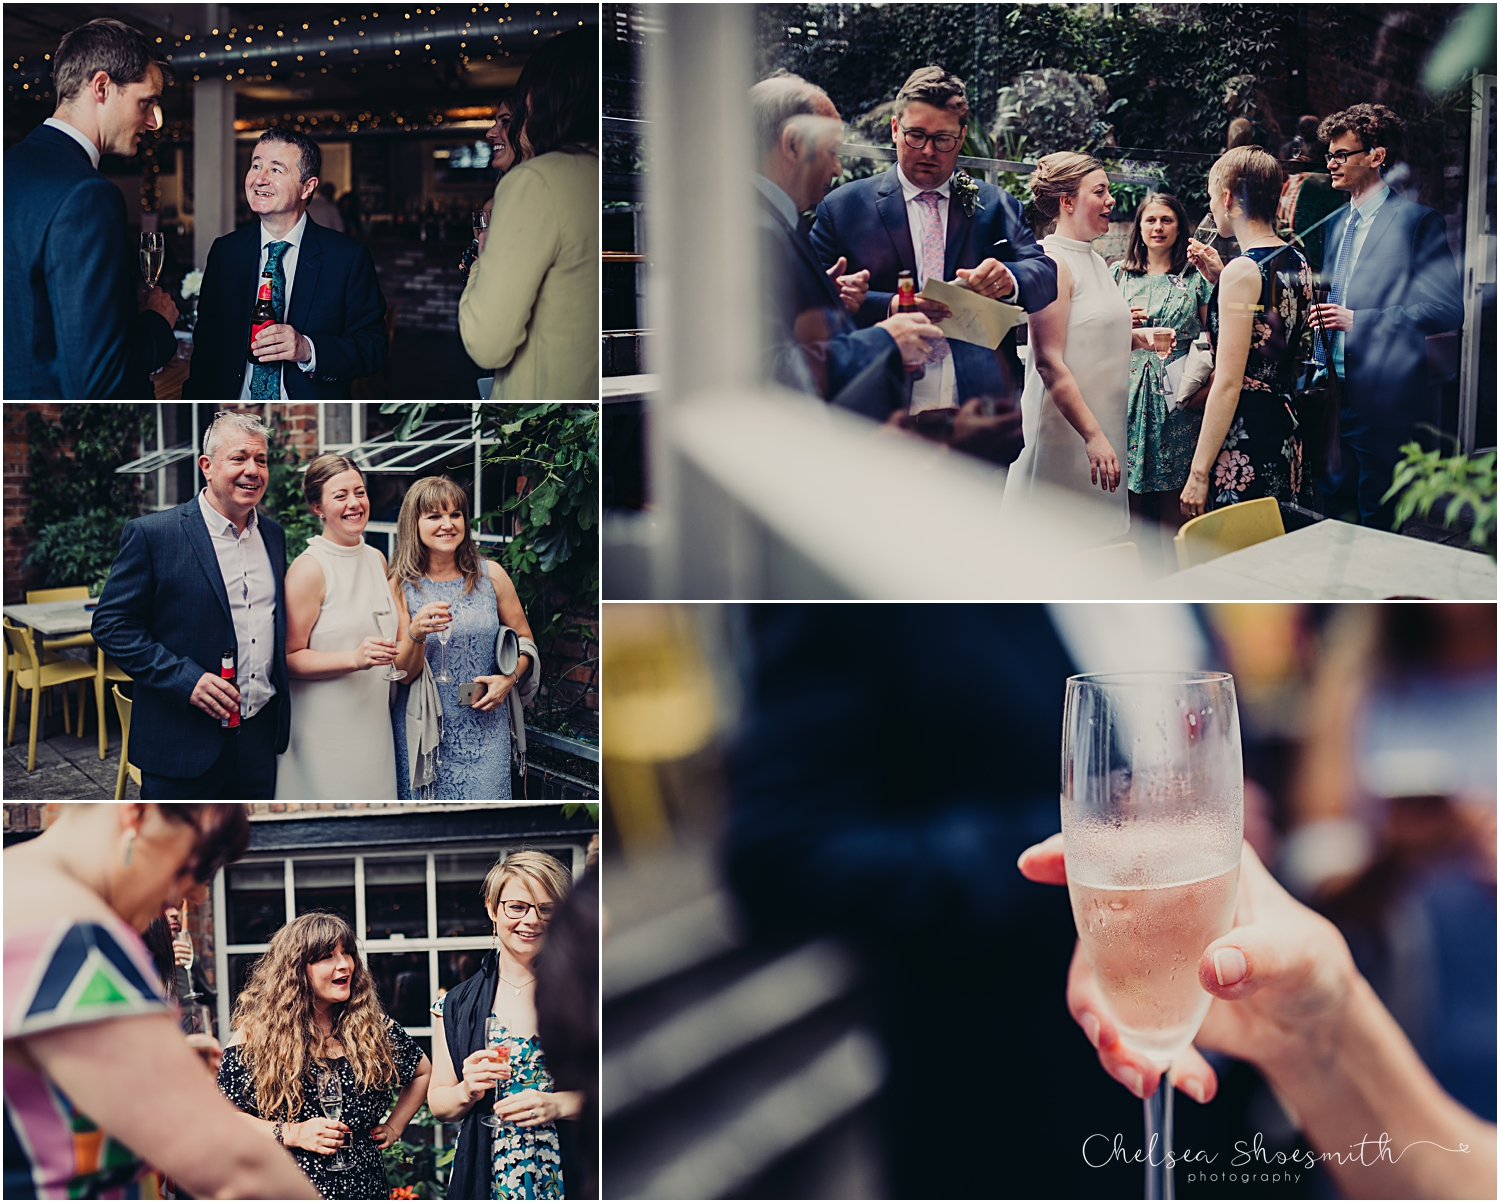 (212 of 395)Rosie & Mike, The Pen Factory - Chelsea Shoesmith Photography_